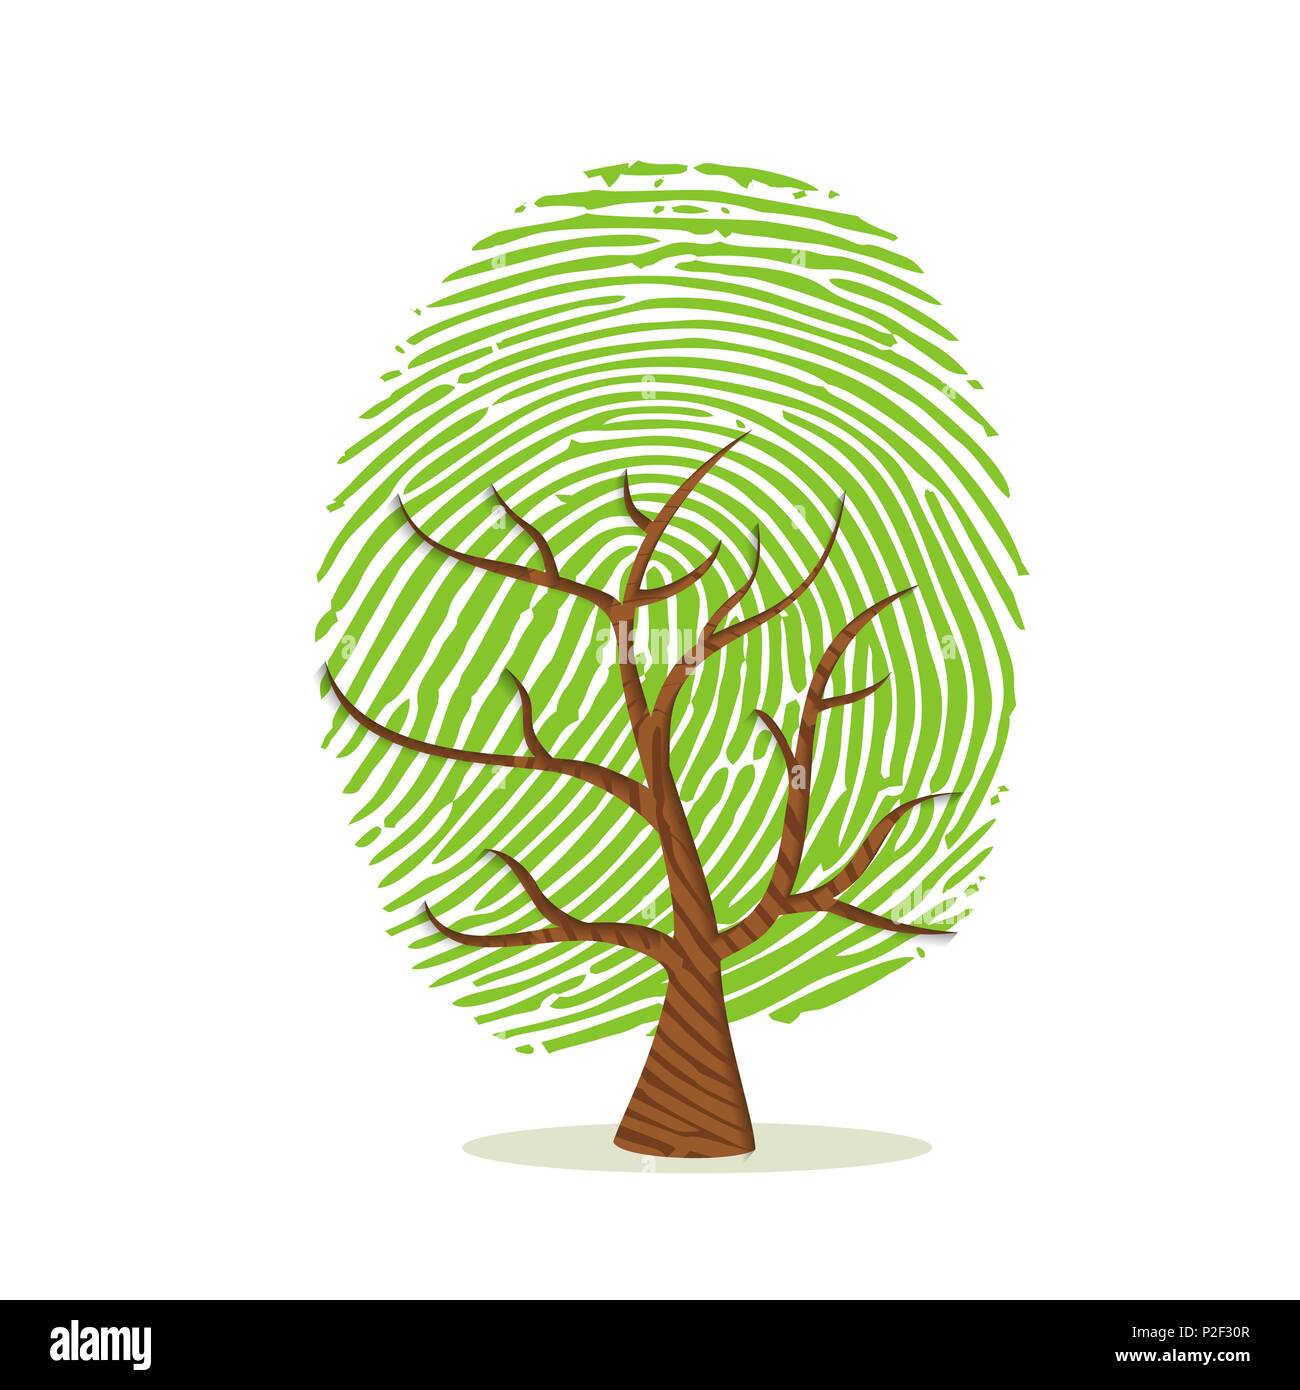 Fingerprint tree made of green human finger print. Identity concept, environment help or earth care. EPS10 vector. - Stock Vector